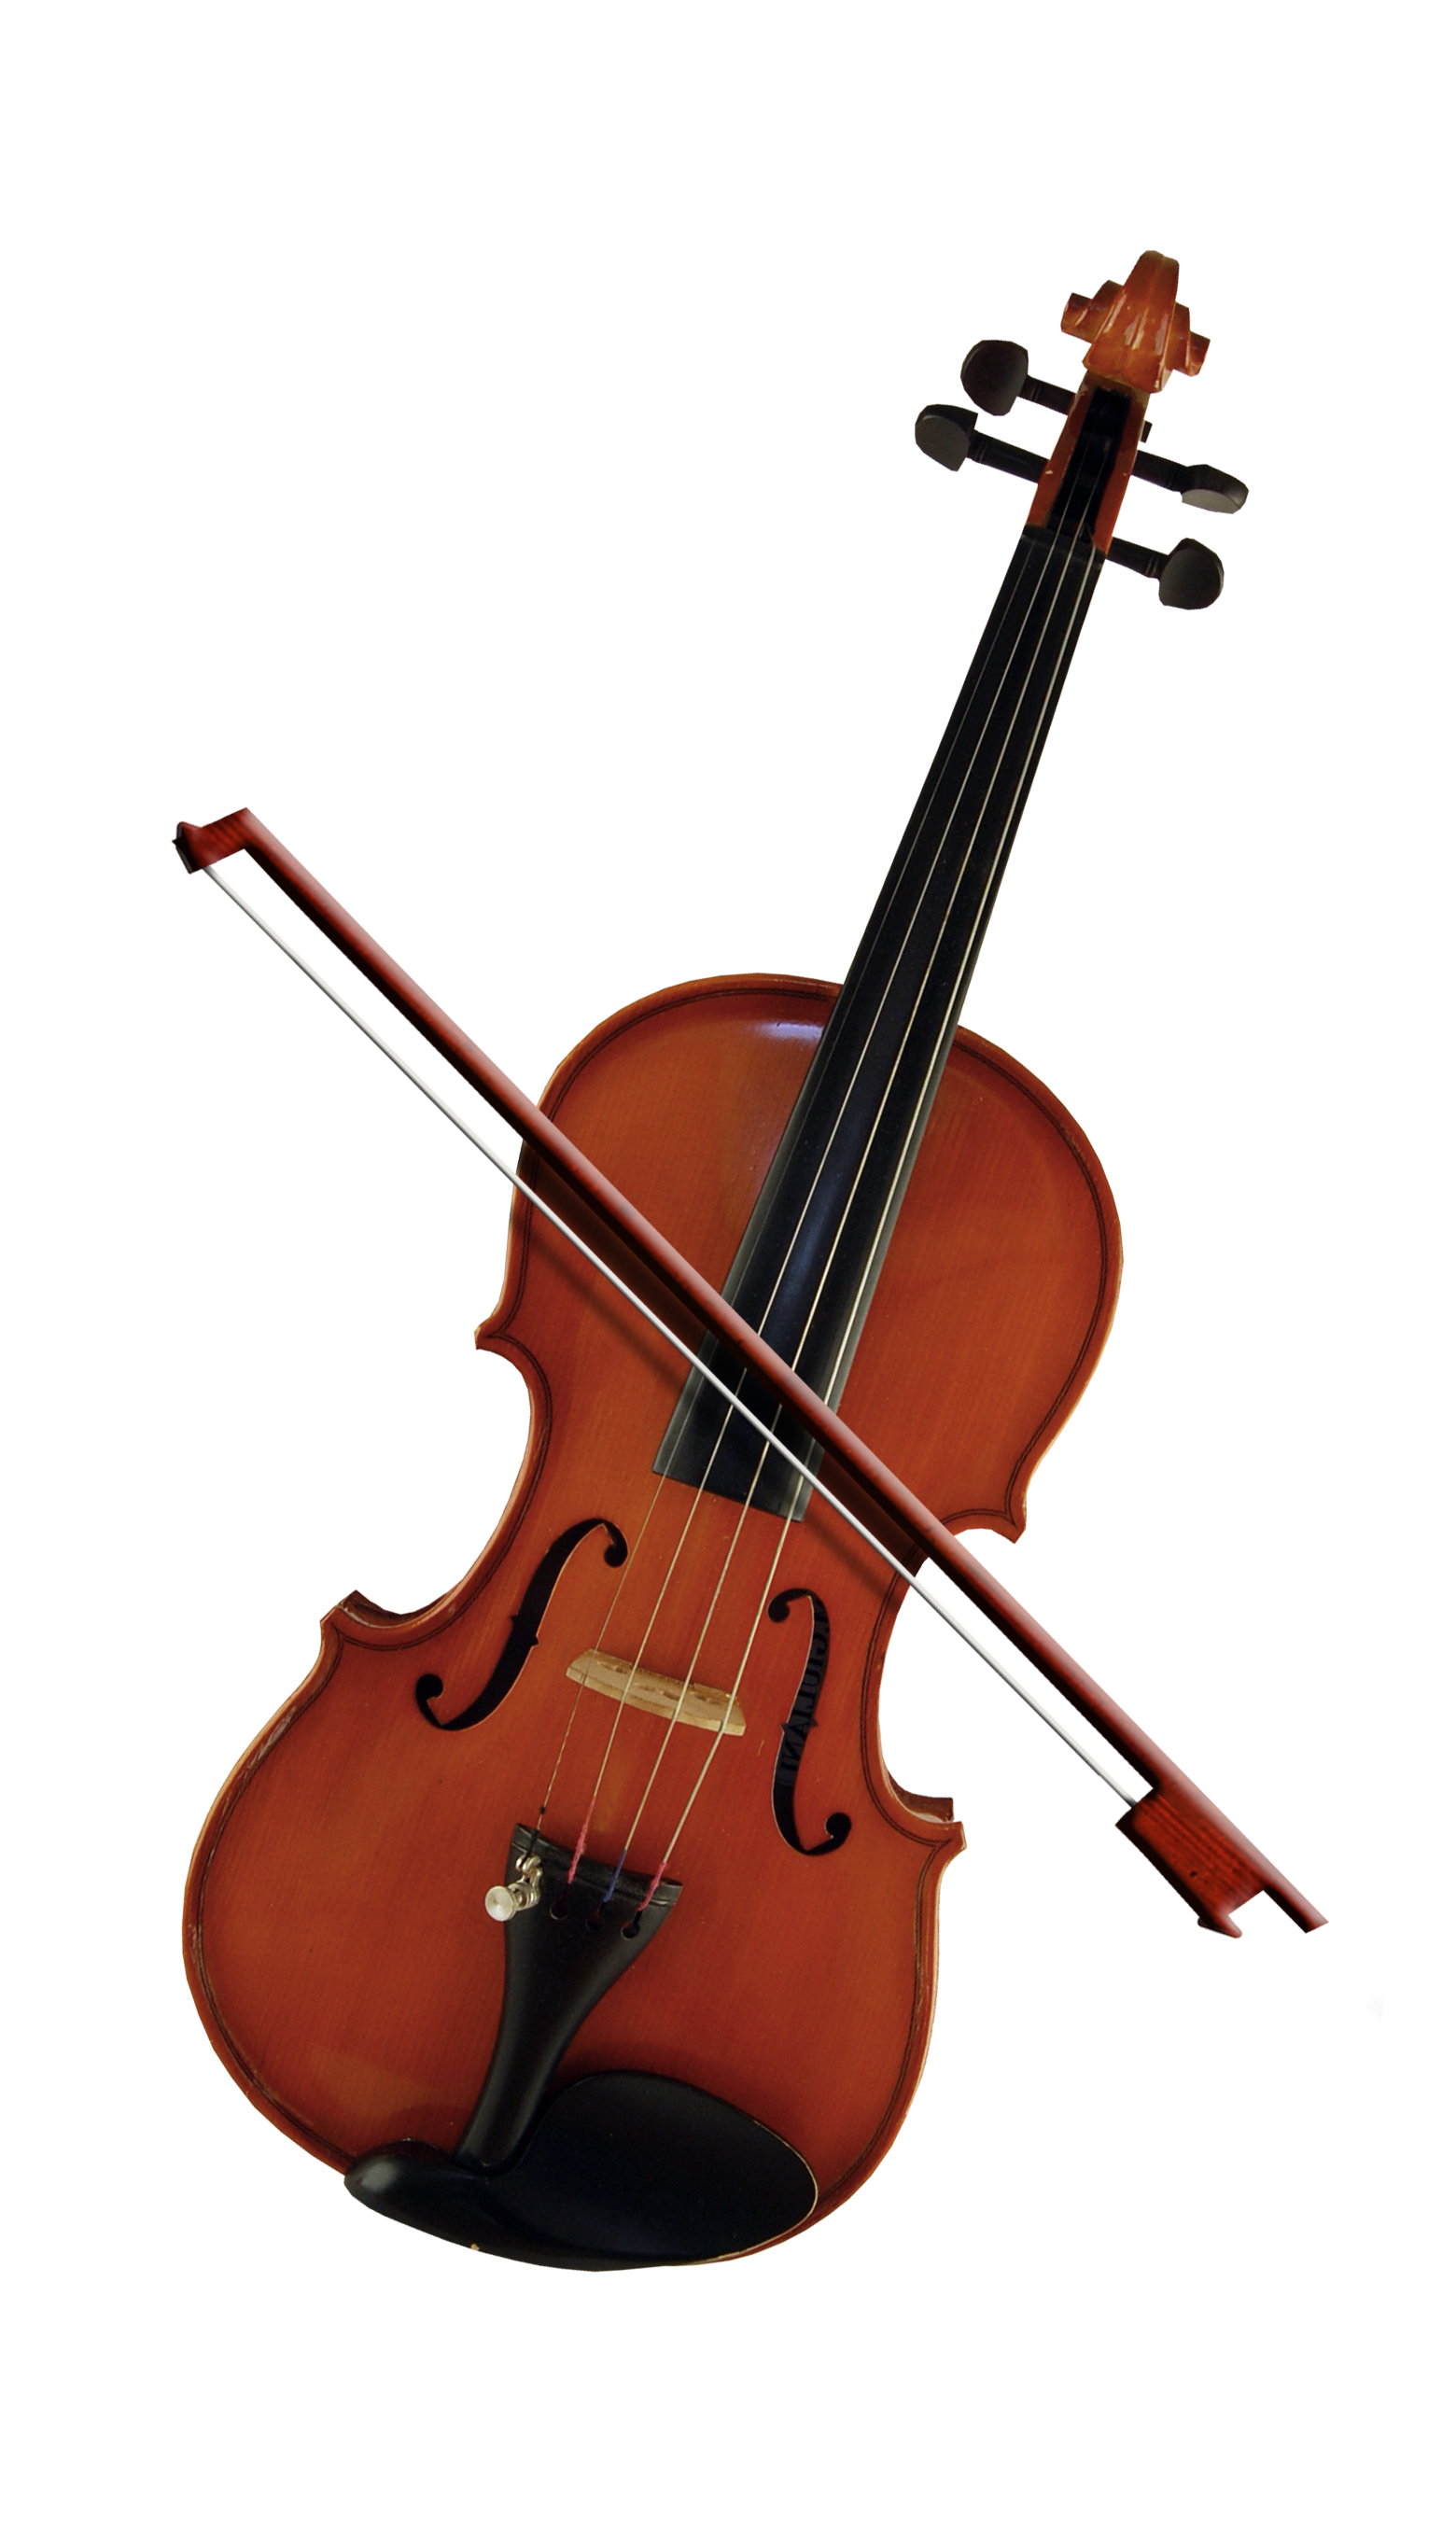 Bass violin violone beautiful. Cello clipart viola